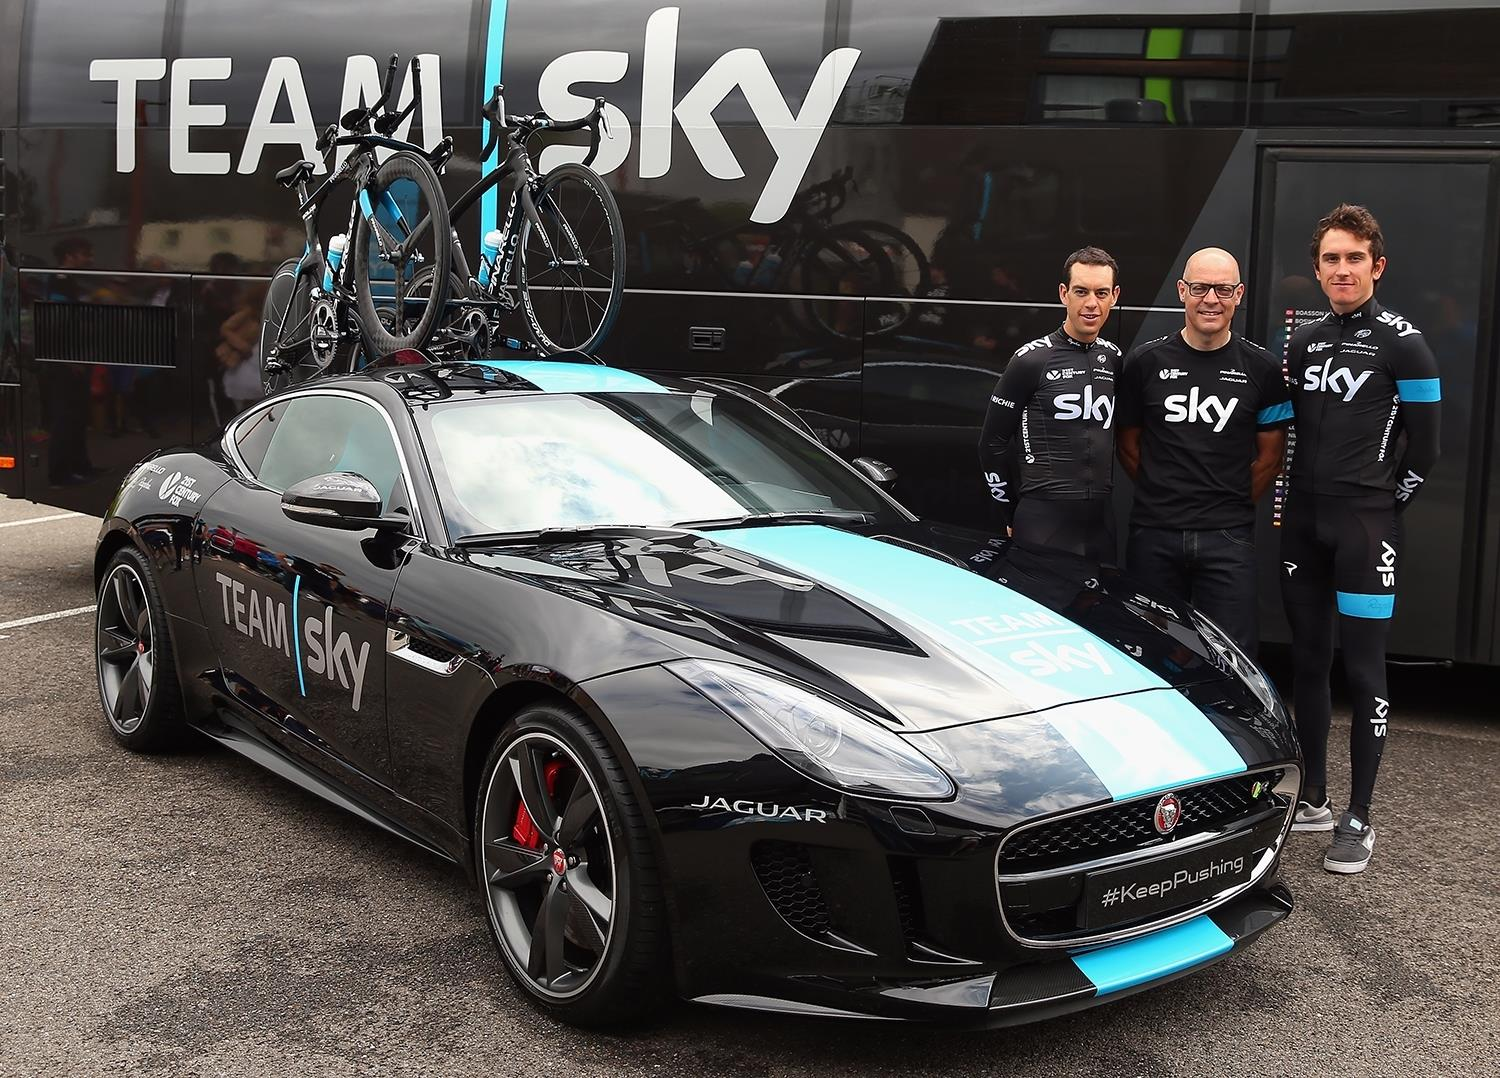 Jaguar F-TYPE Team Sky pictures and wallpaper